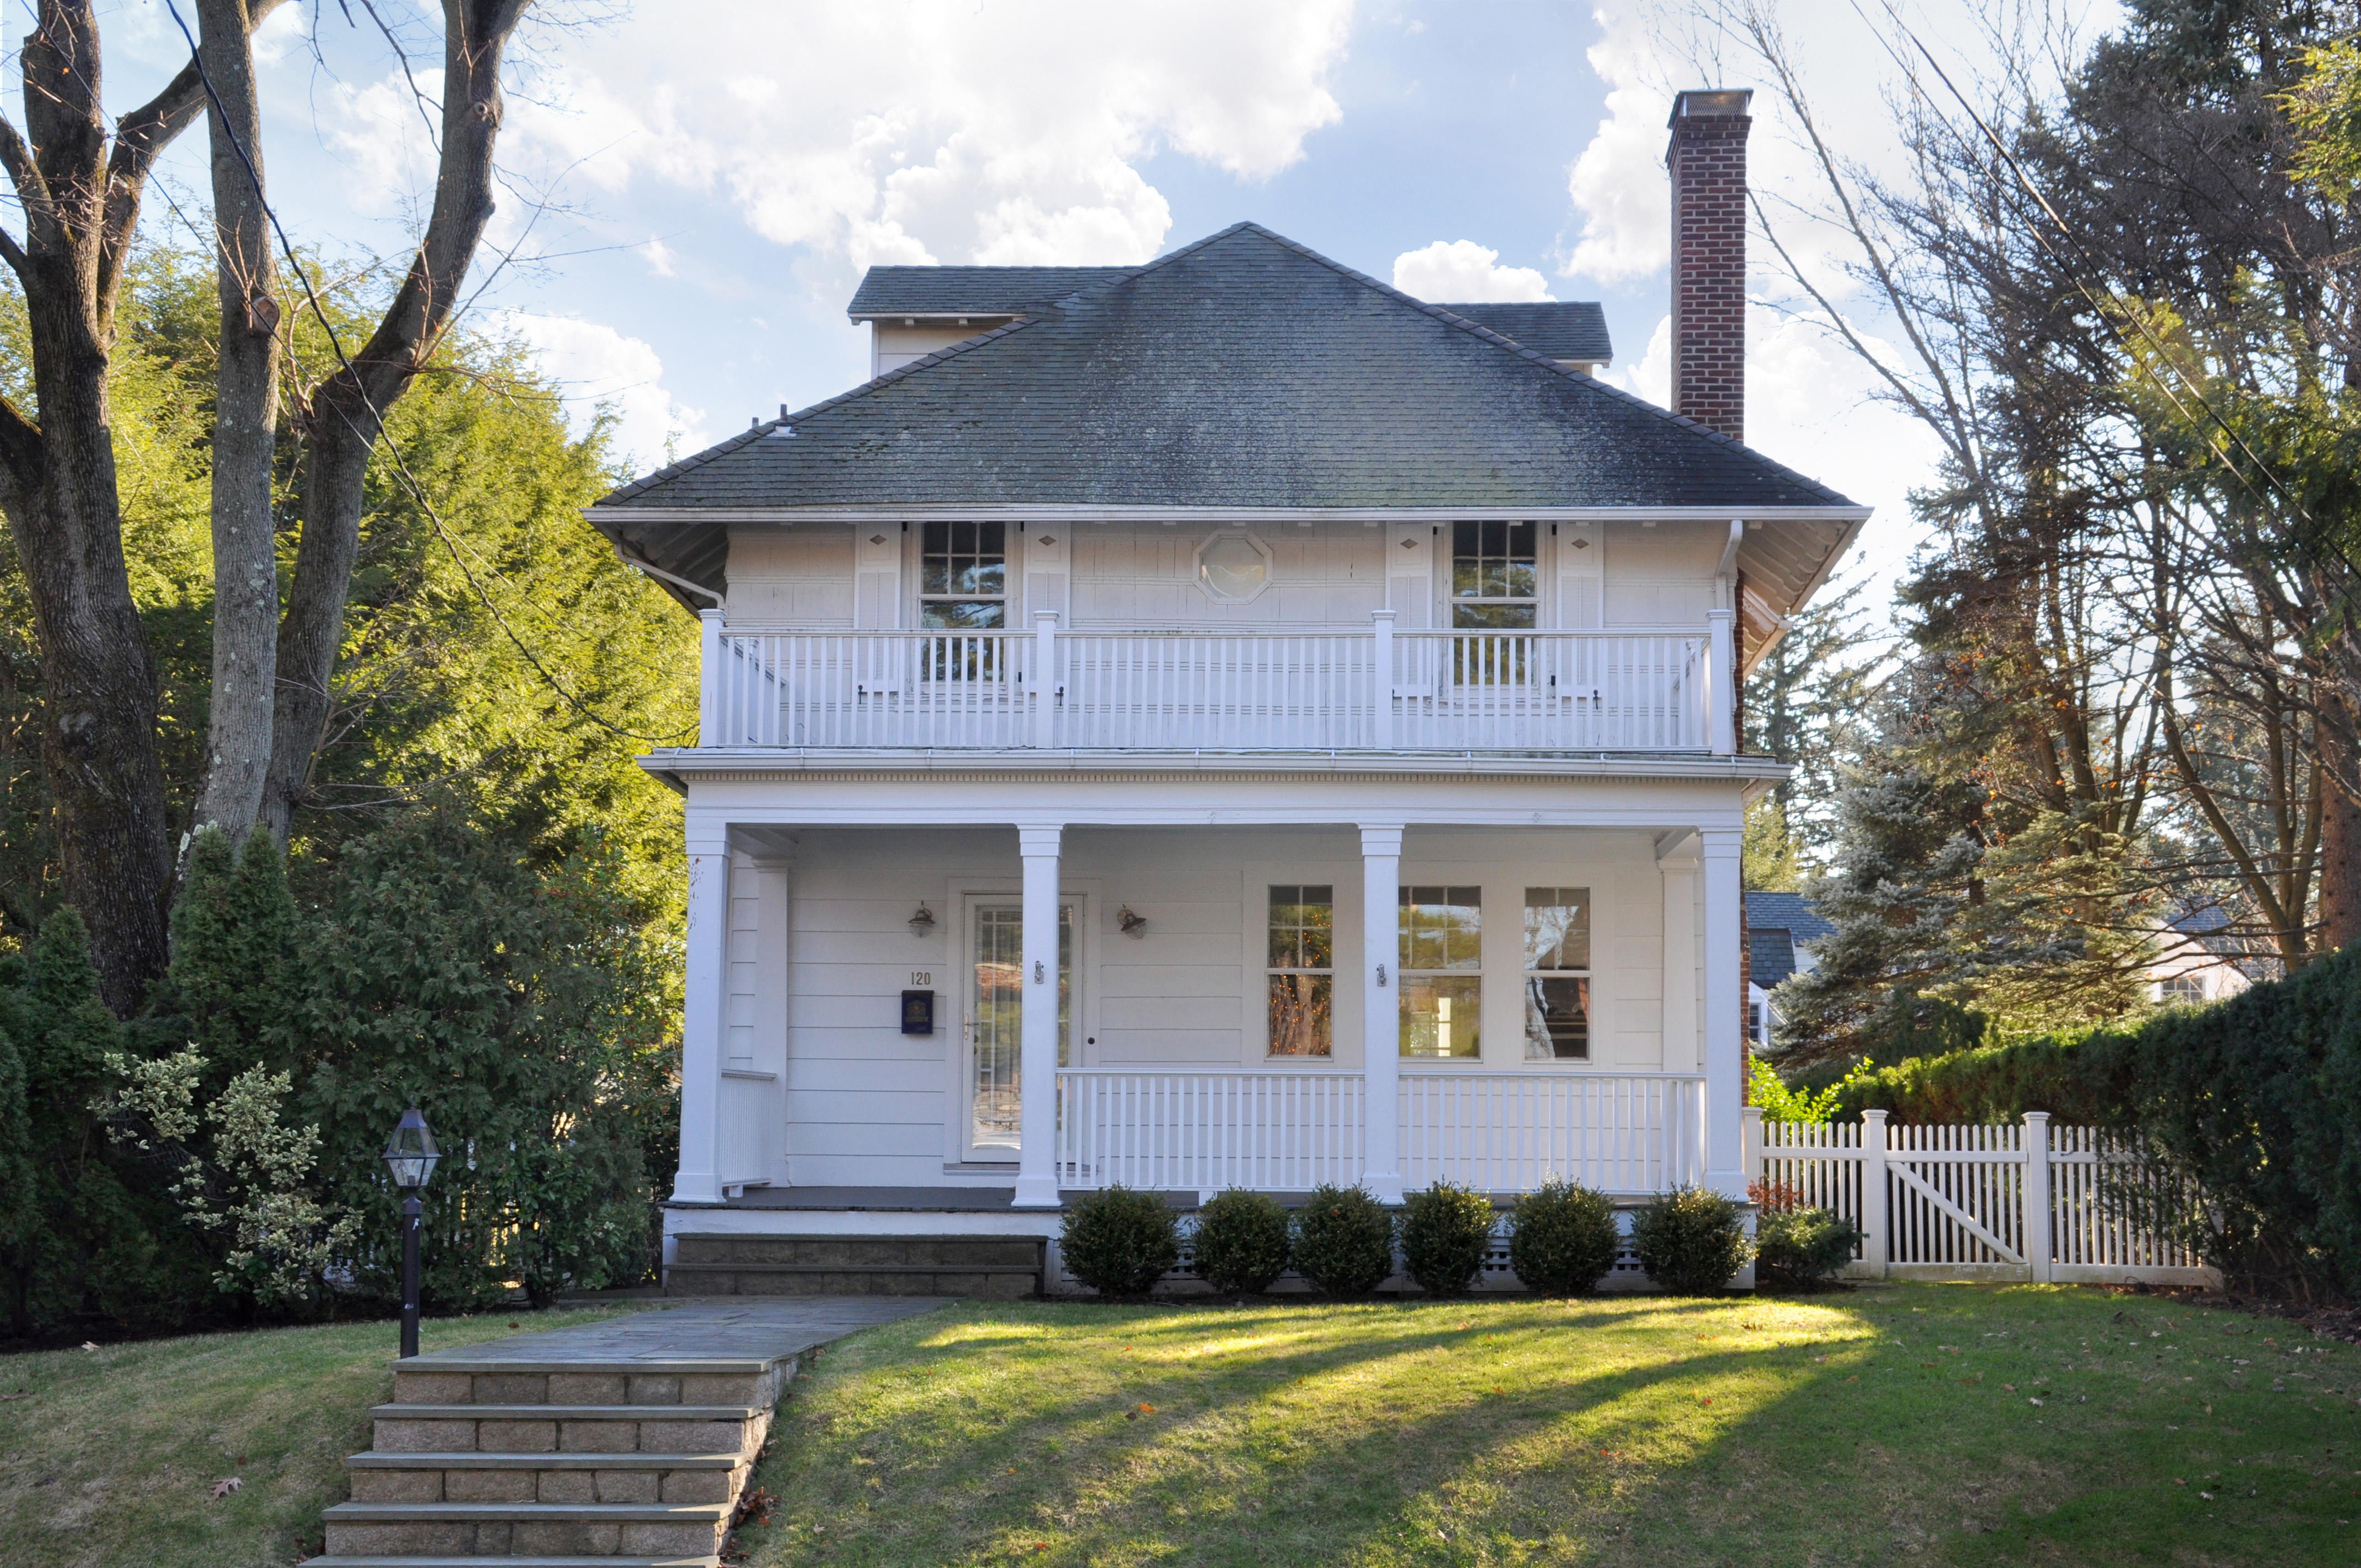 Single Family Home for Sale at Quintessential Farmhouse 120 Tanglewylde Avenue Bronxville, New York 10708 United States